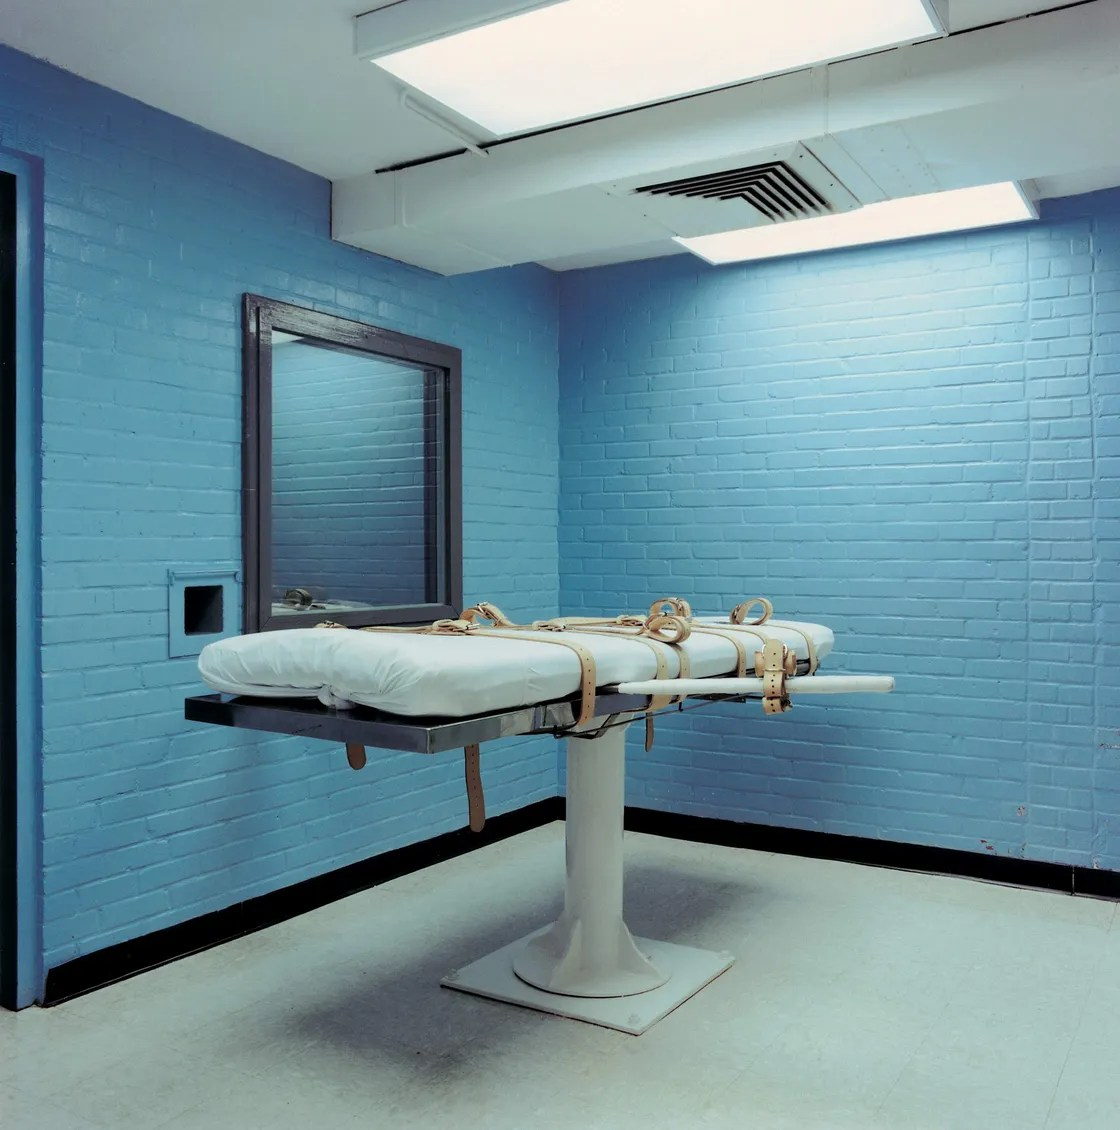 What States Still Use The Electric Chair Deathternity Haunting Photos Of U S Death Execution